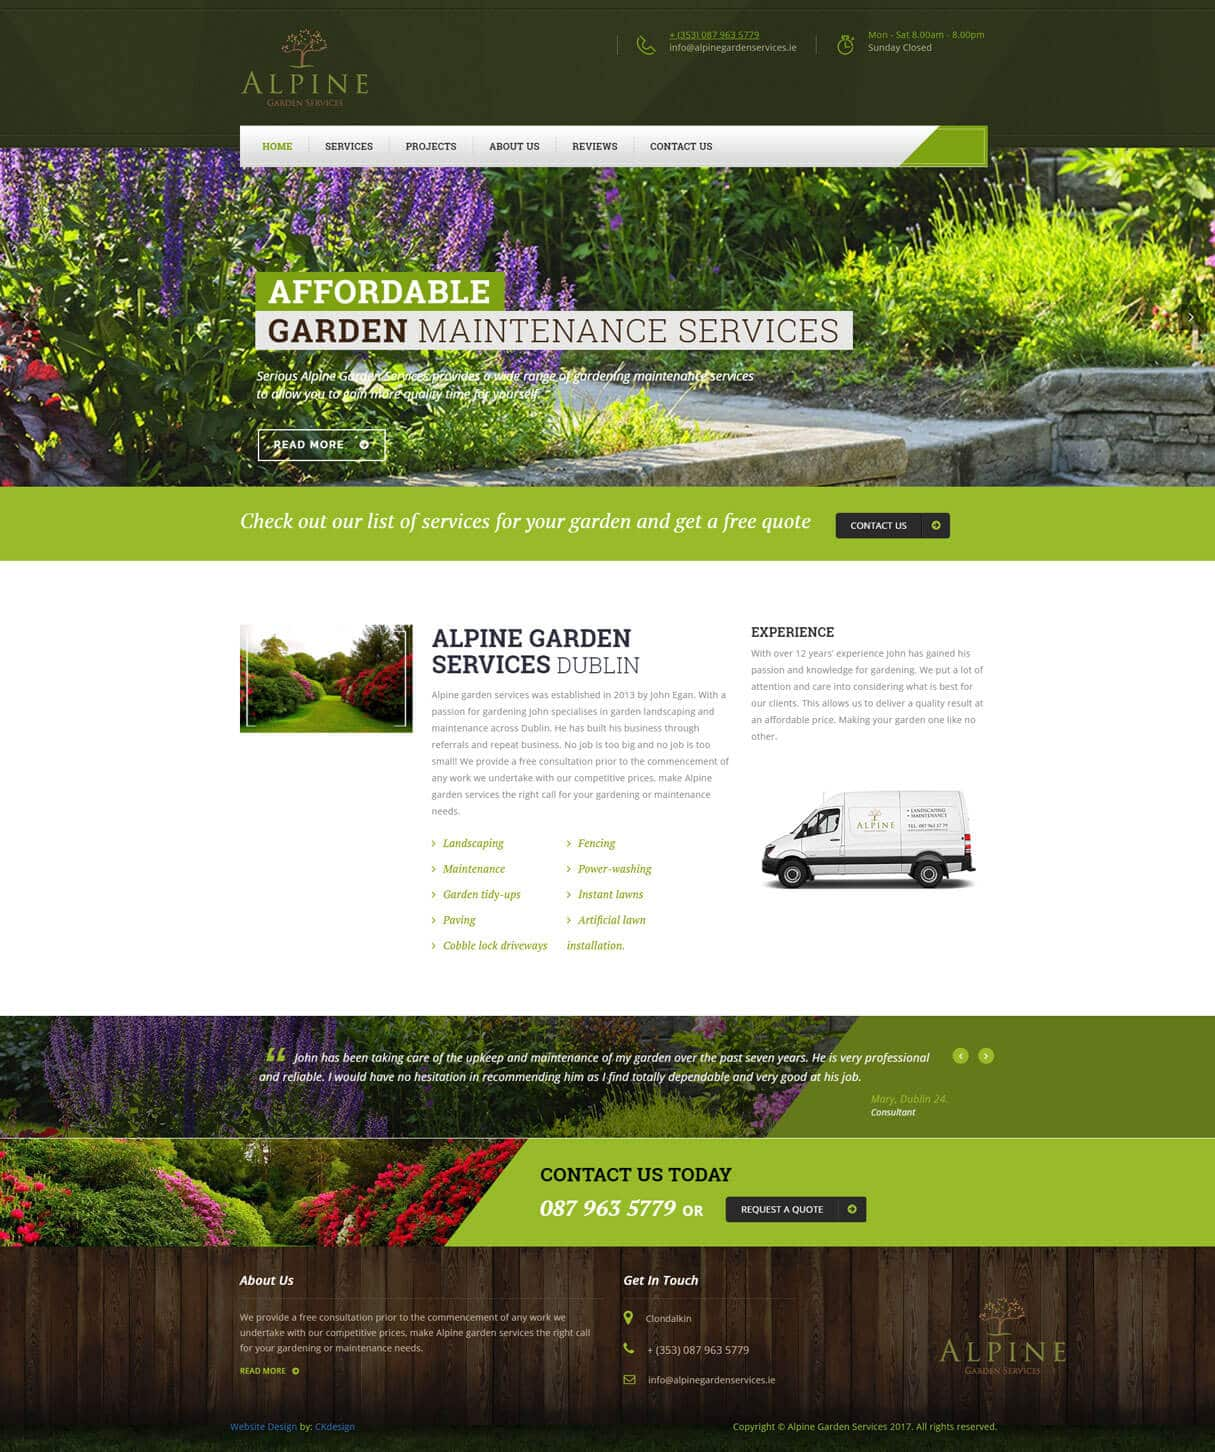 alpine garden services website screenshot